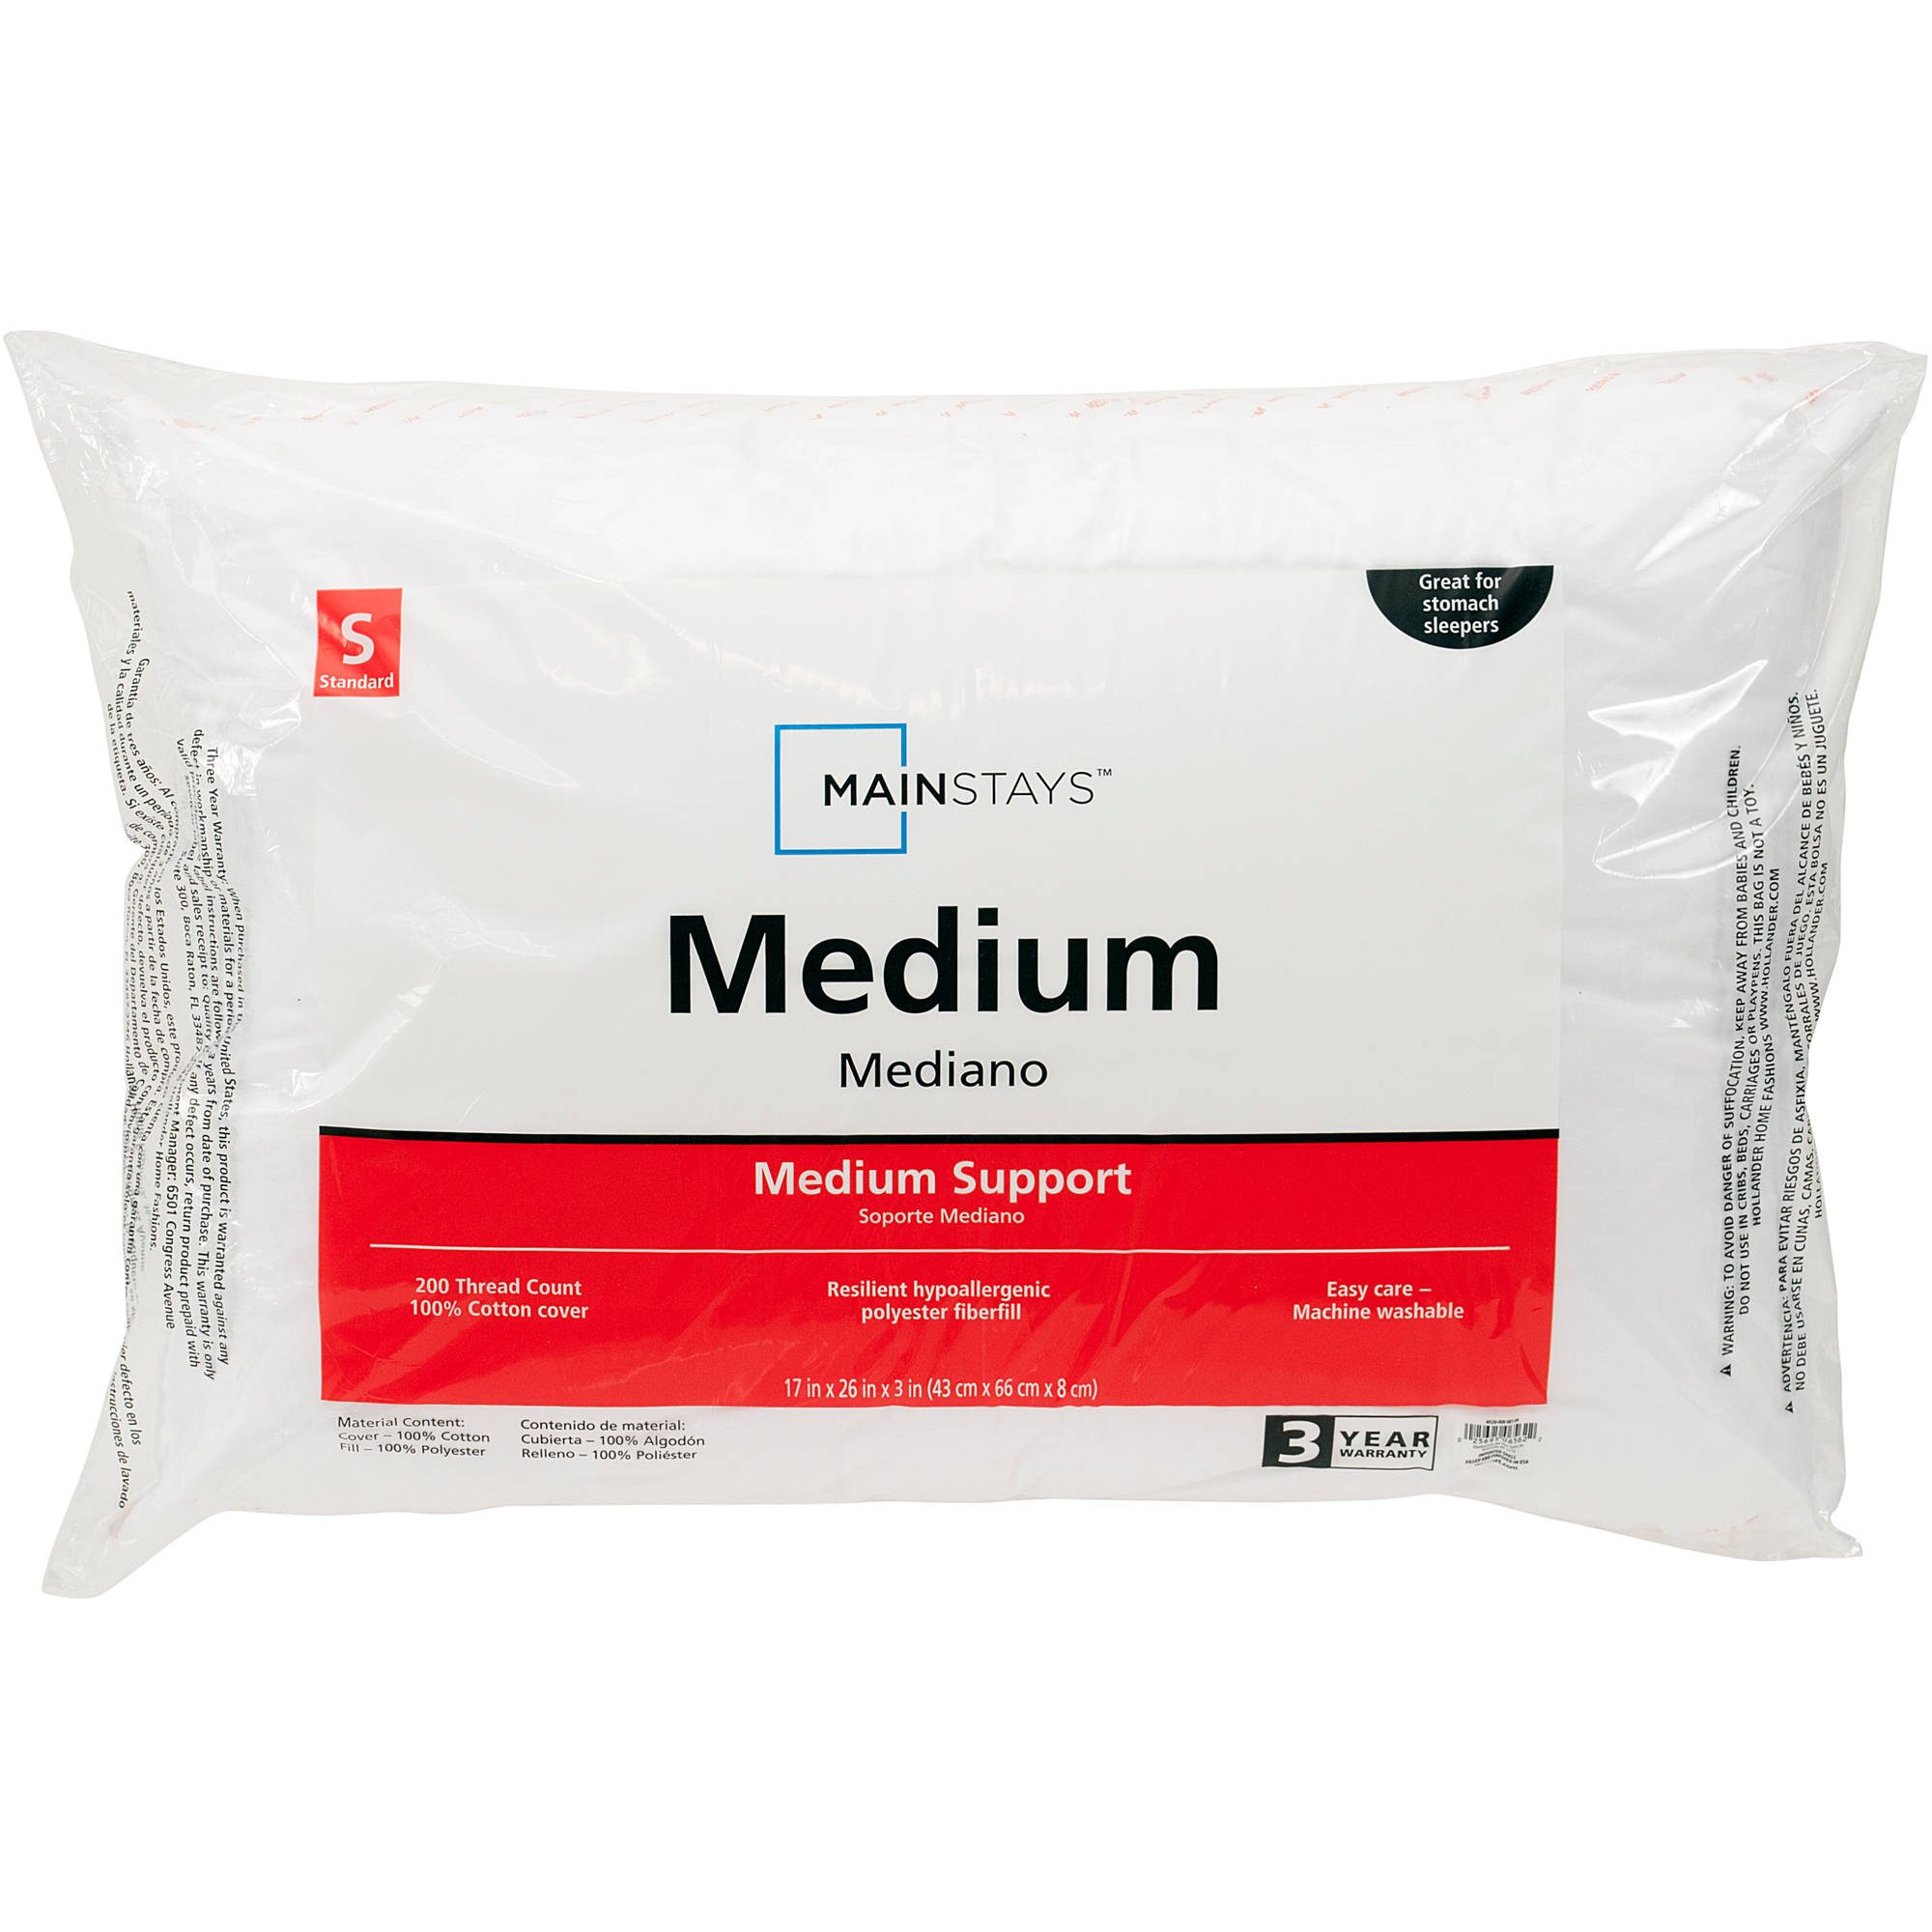 Mainstays 100% Cotton Medium Pillows, Set of 2, Multiple Sizes